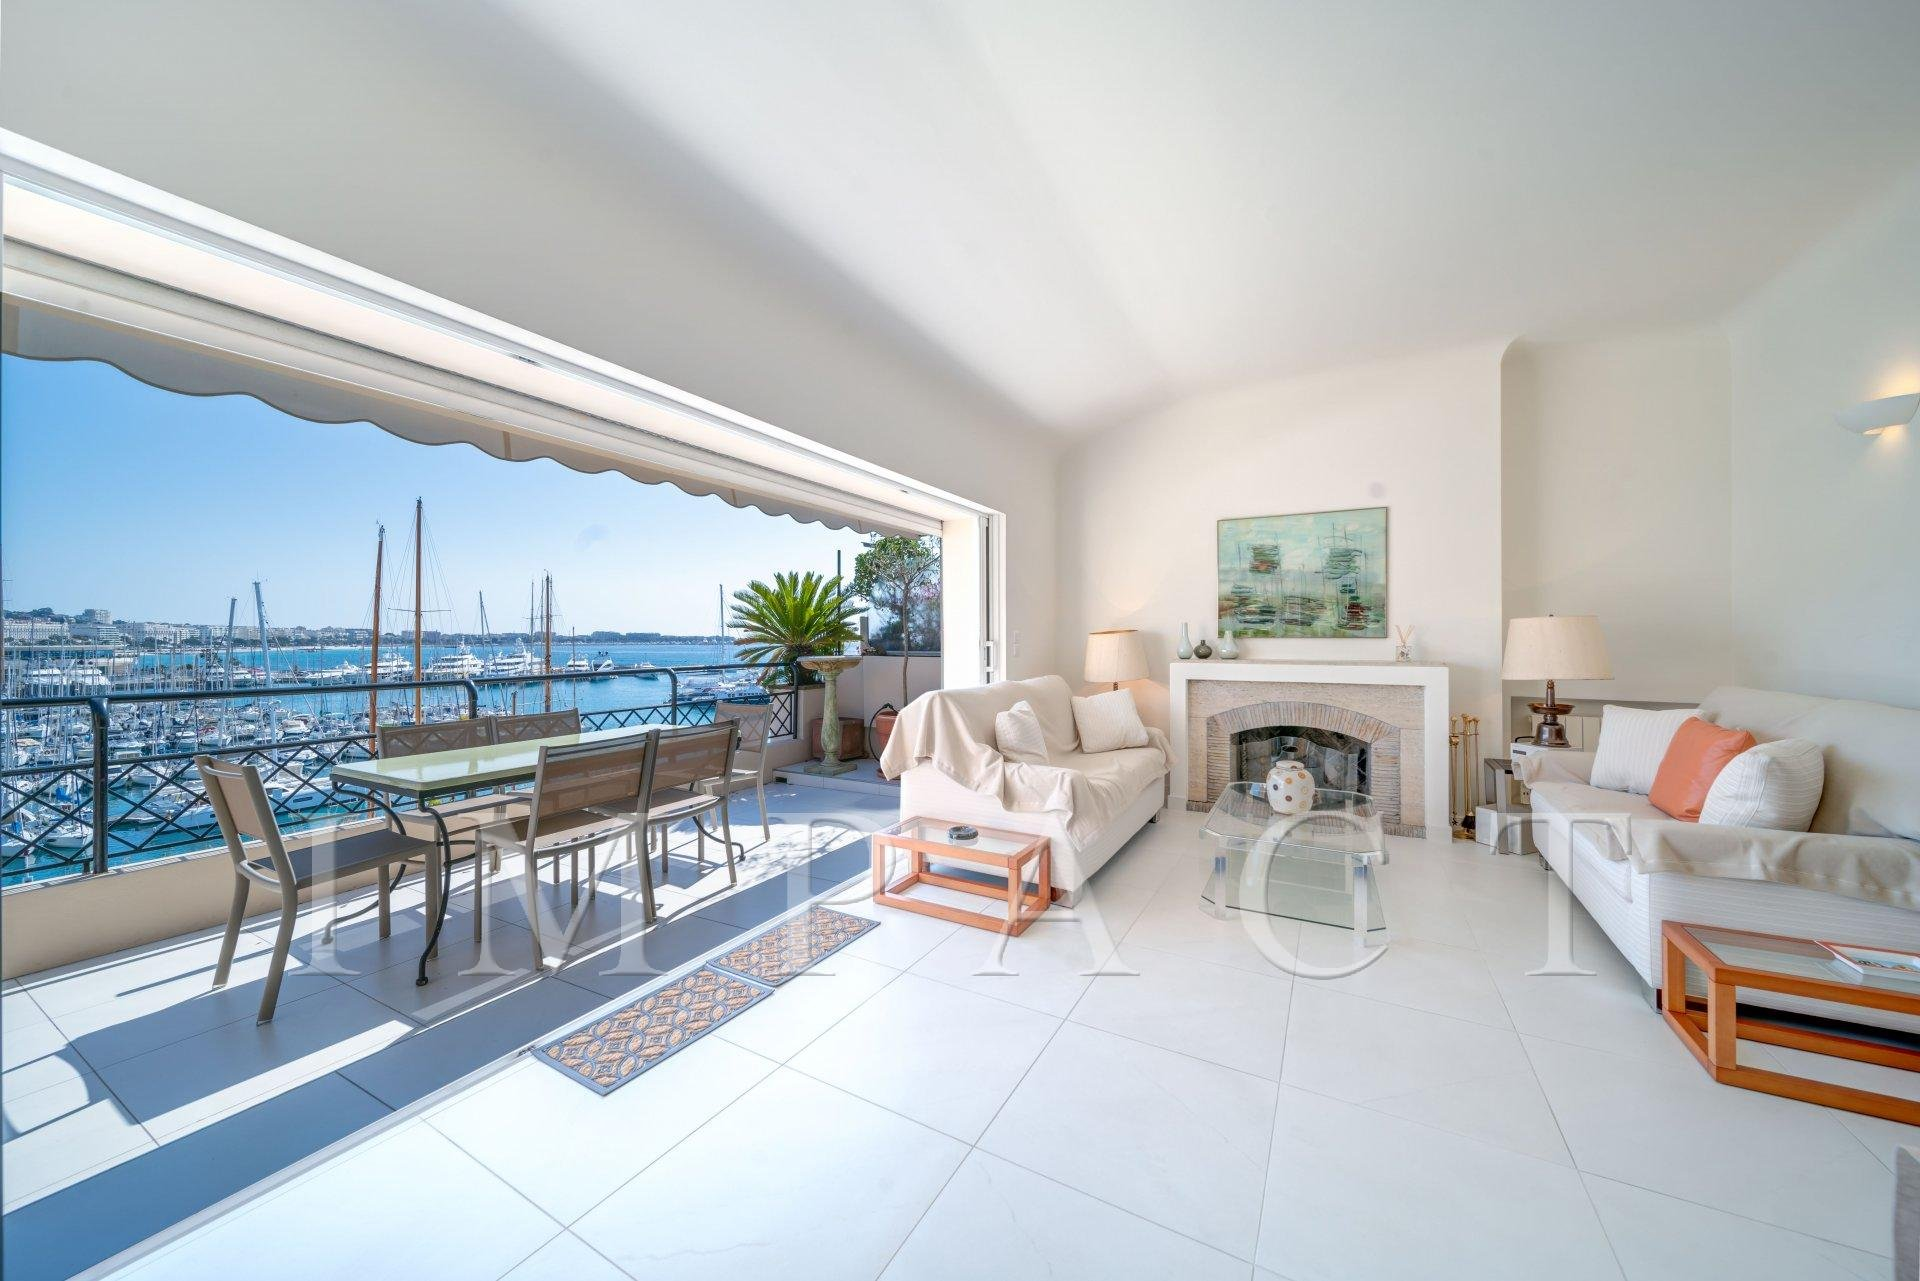 Apartment to rent, sea and old pier view, Cannes